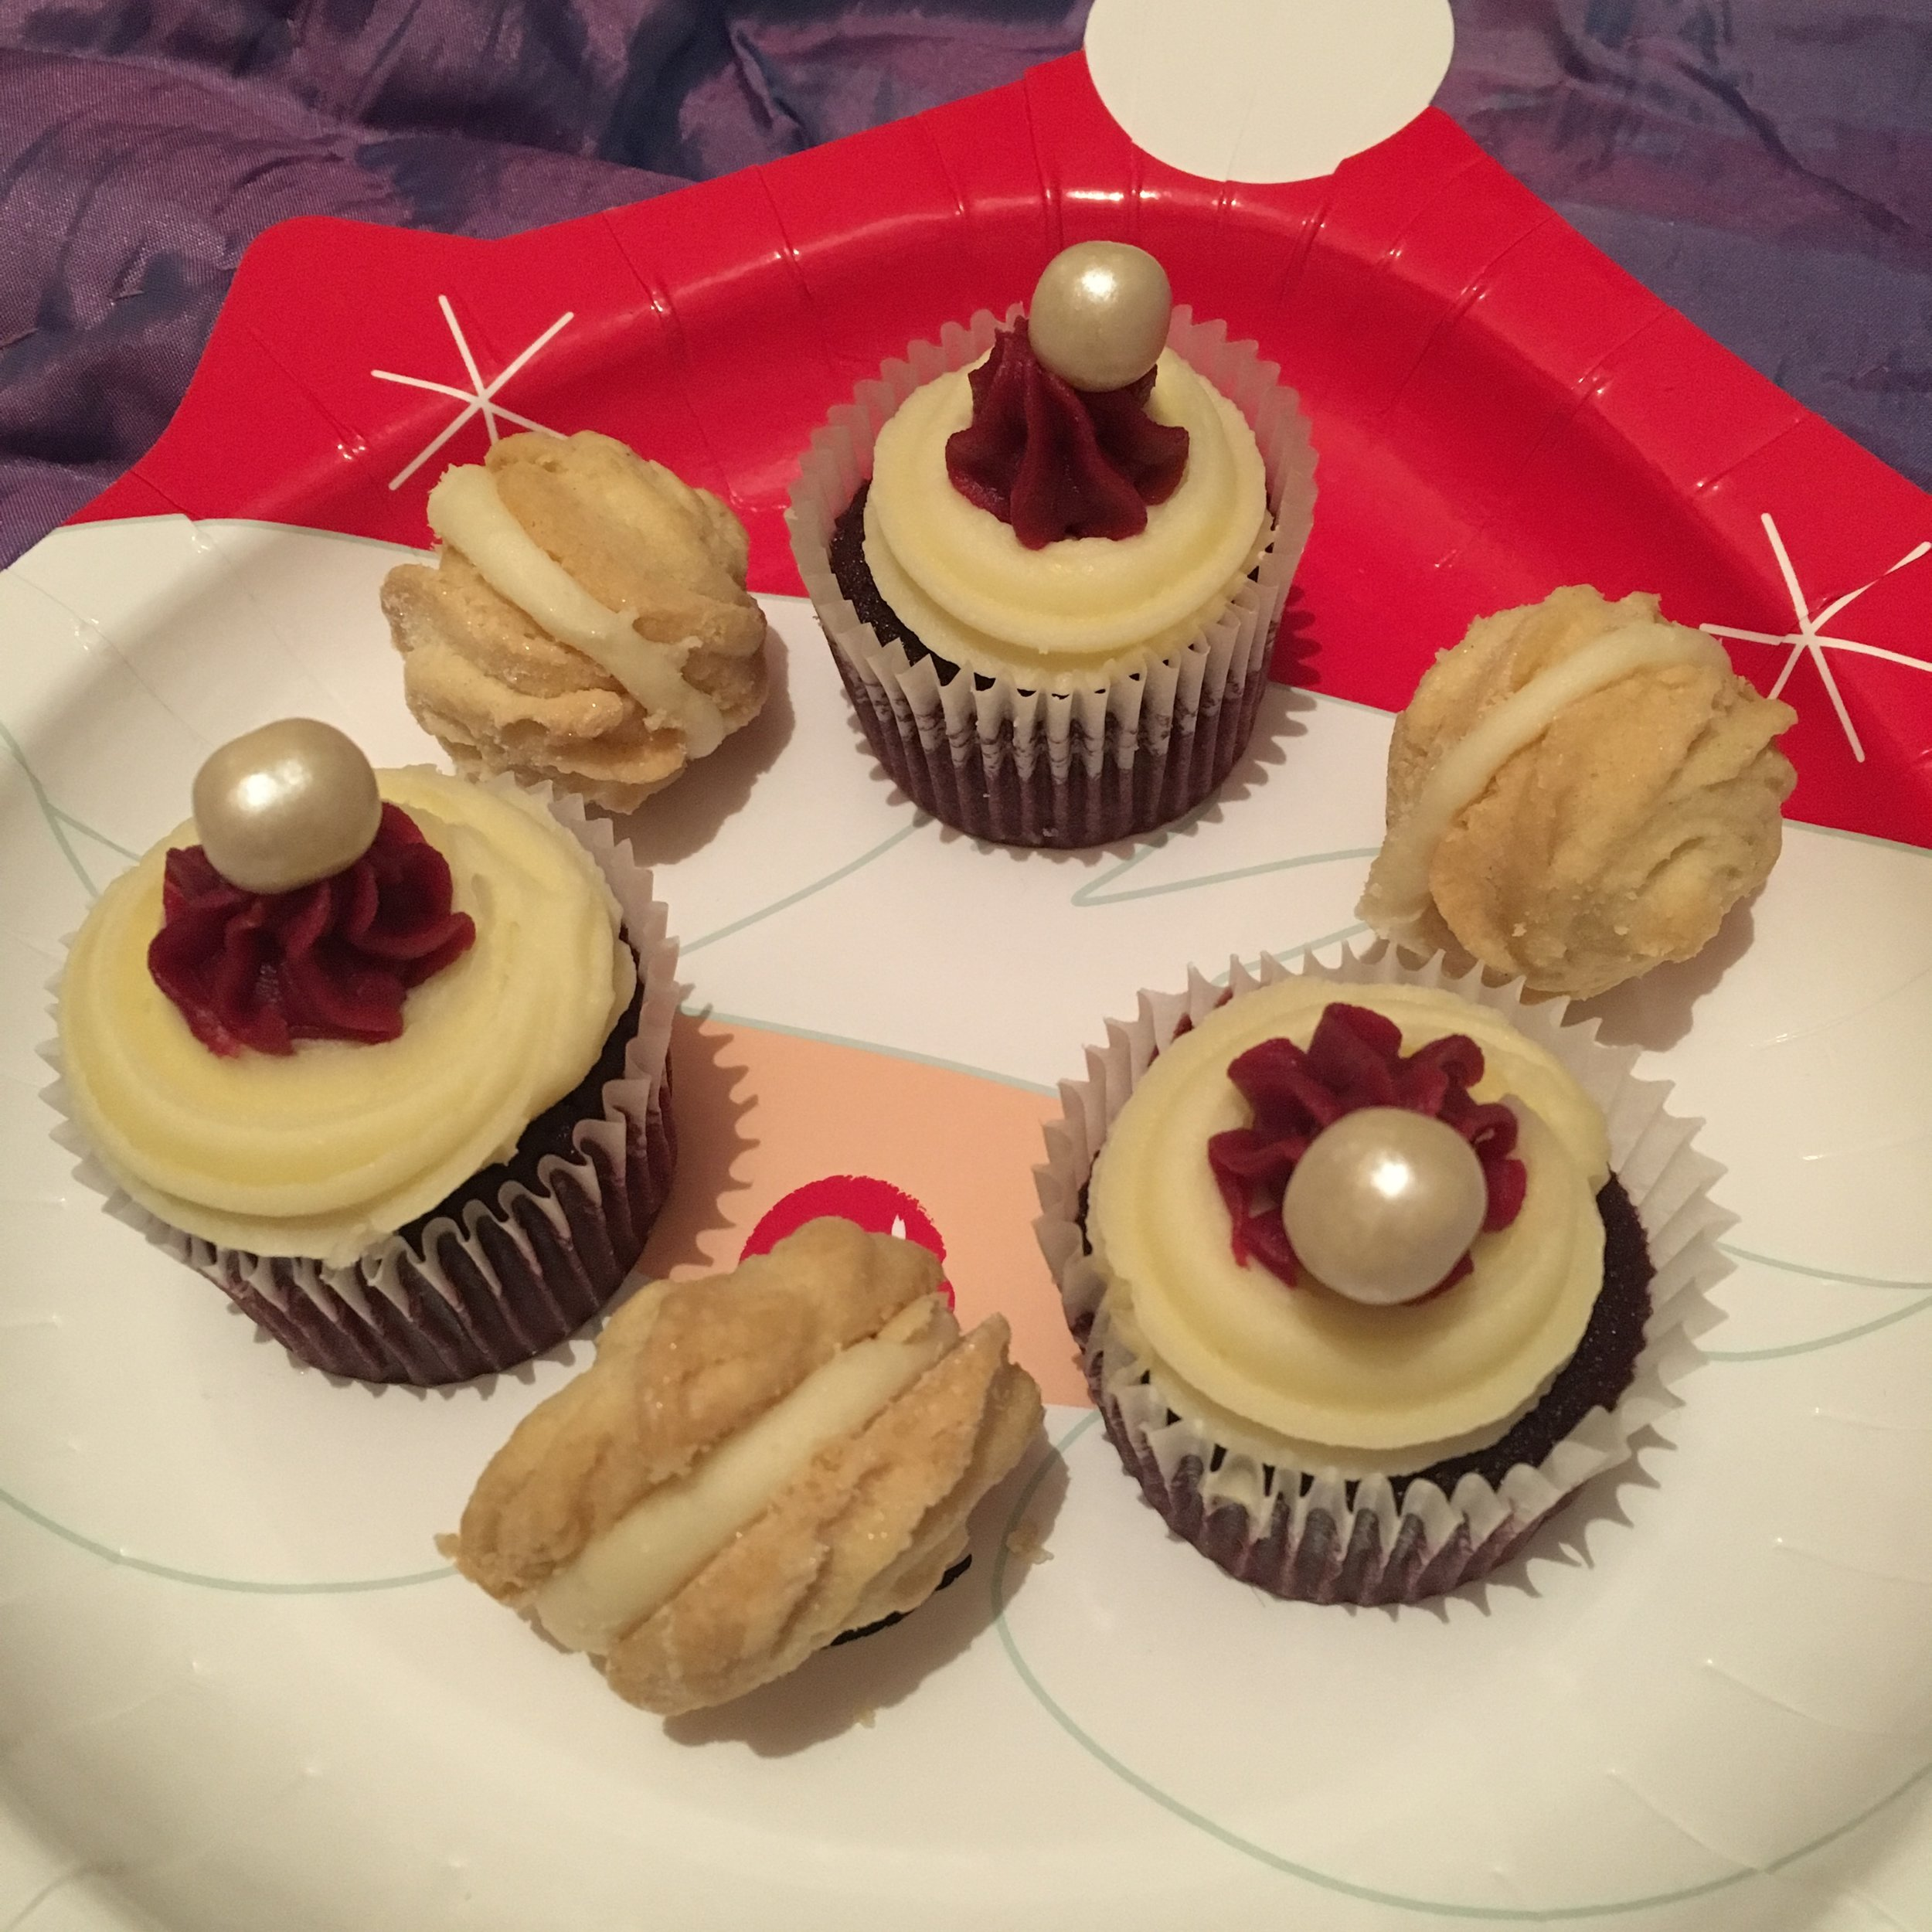 Red velvet cupcakes and Prosecco whirls